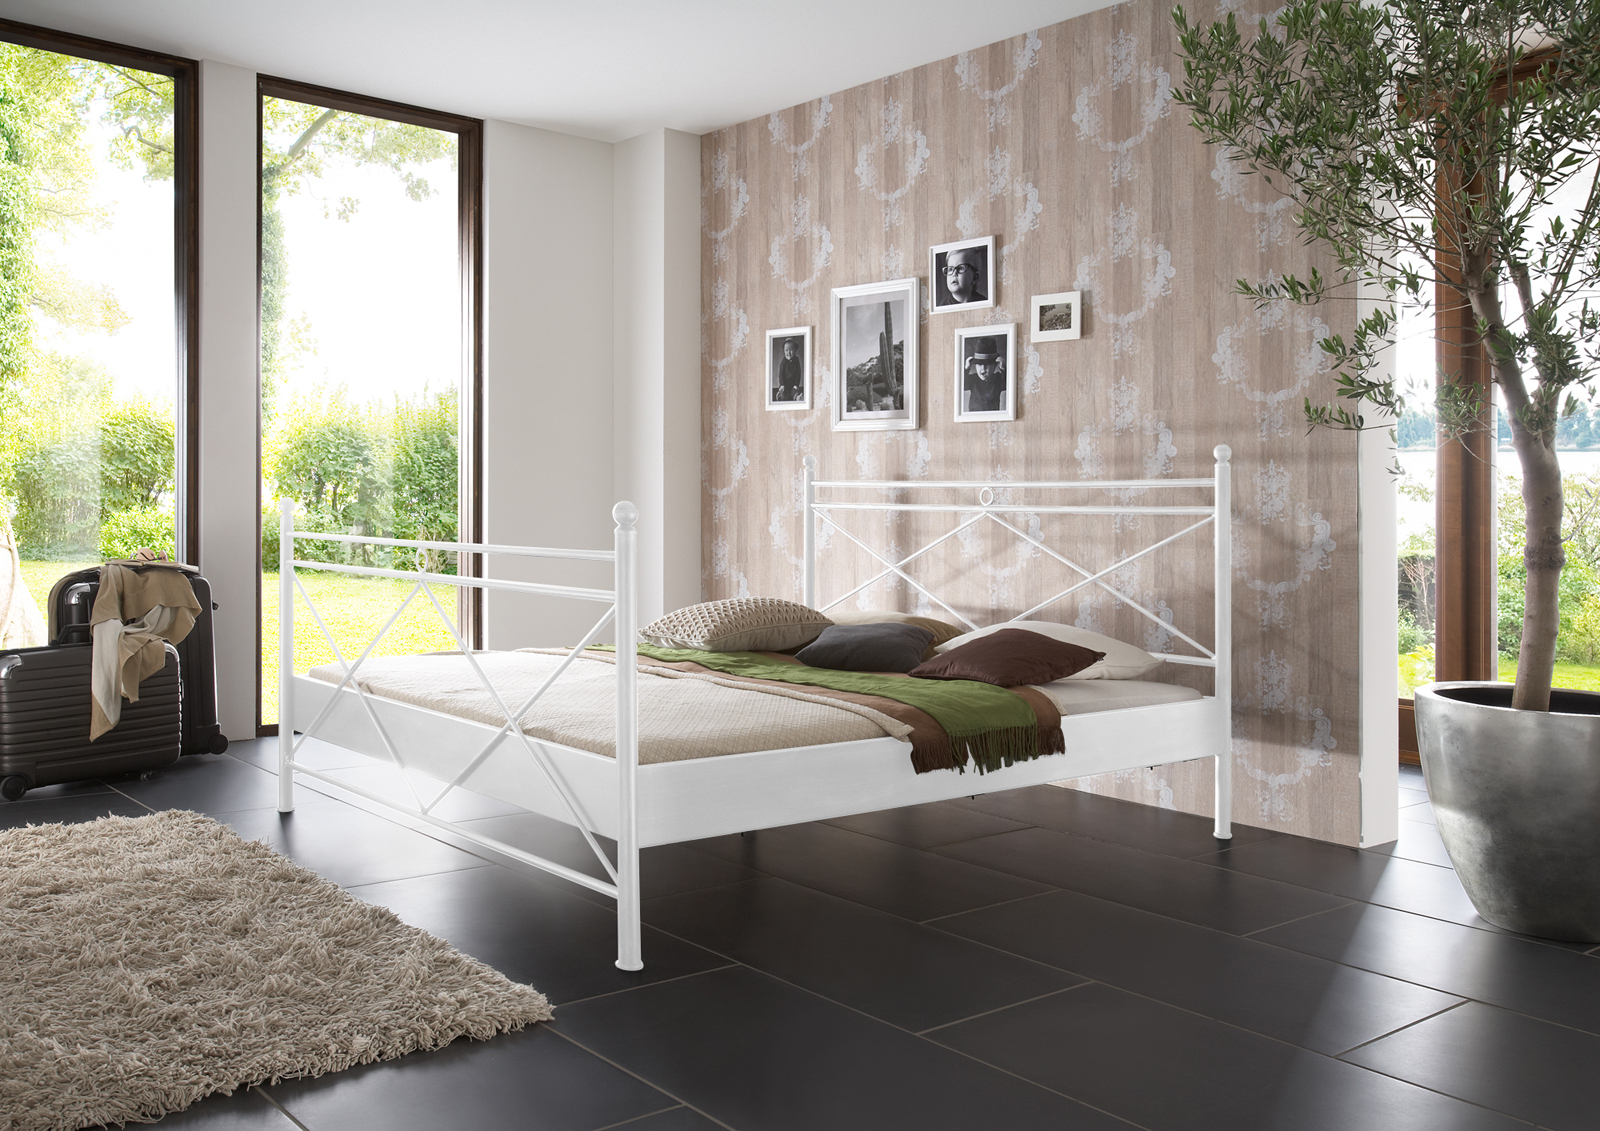 sam metallbett wei 160 x 200 cm imola g nstig. Black Bedroom Furniture Sets. Home Design Ideas